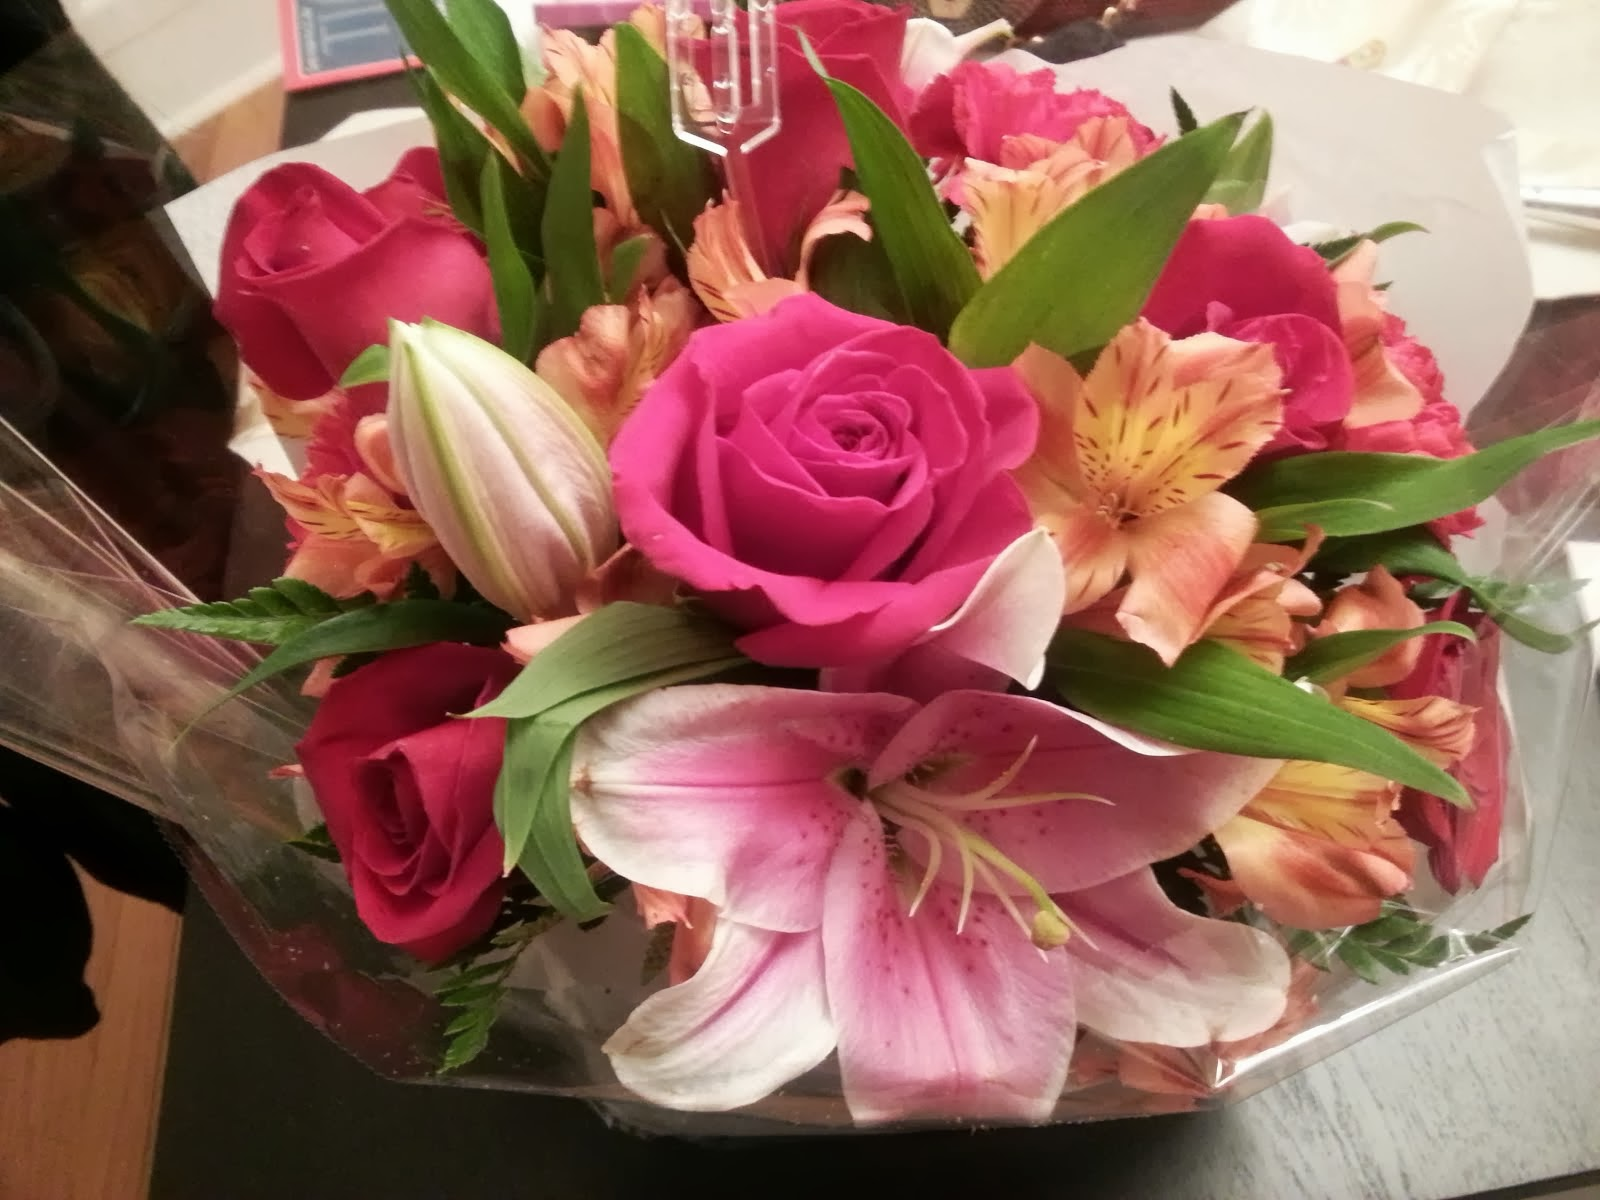 Seren And Craig, The Life: Beautiful Flowers From My Husband